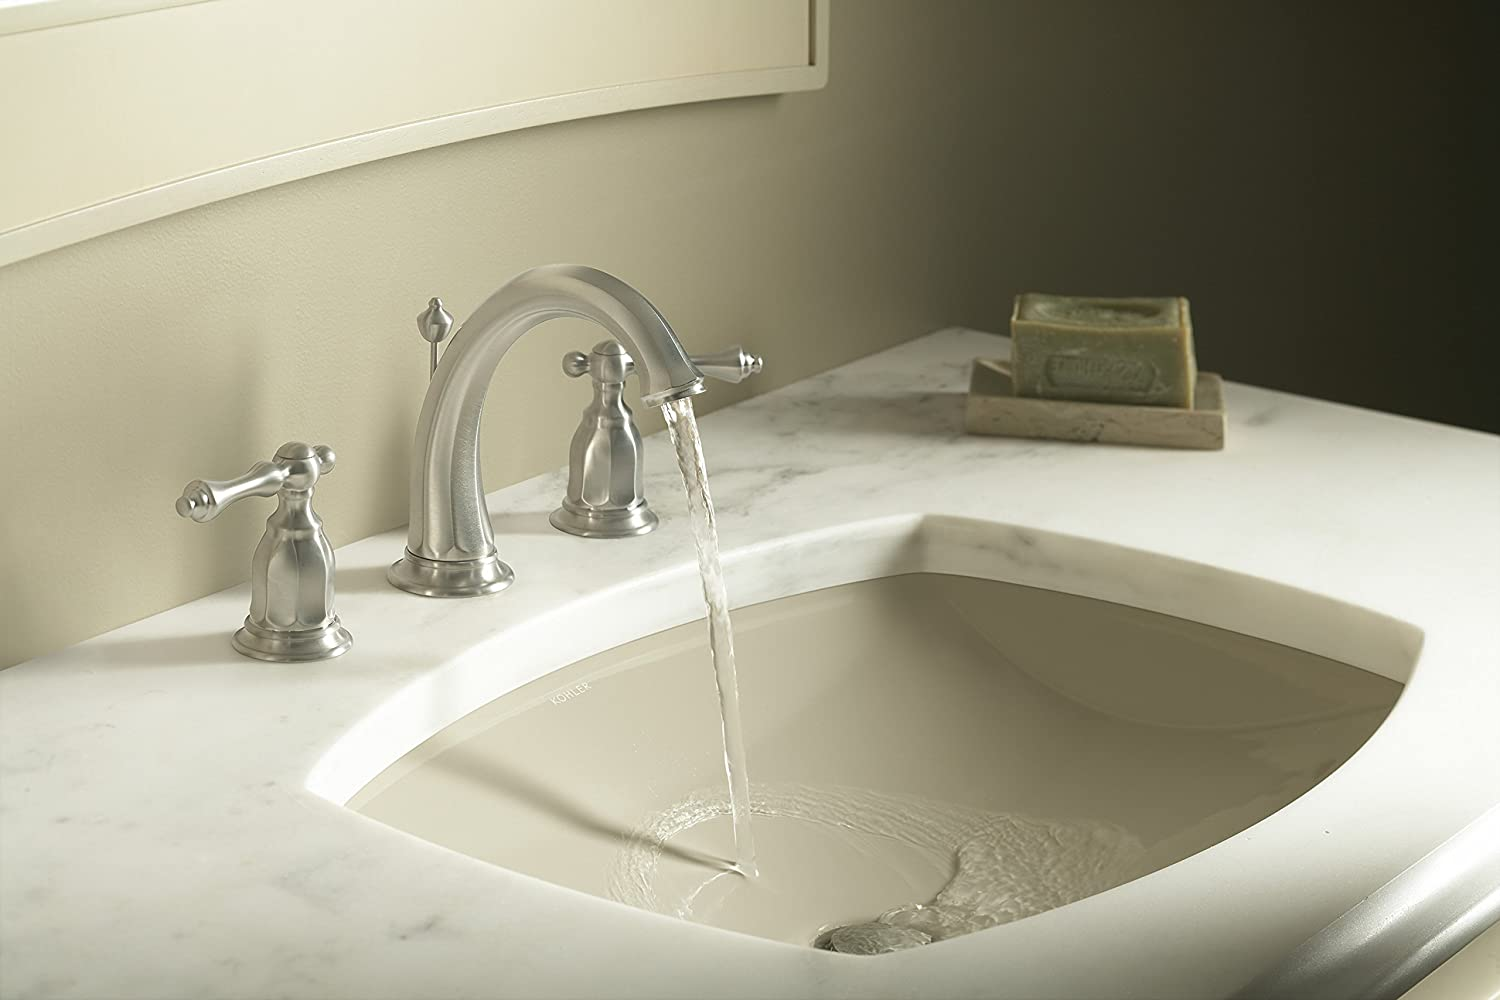 KOHLER K-2382-0 Kelston Undercounter Bathroom Sink, White - Under ...